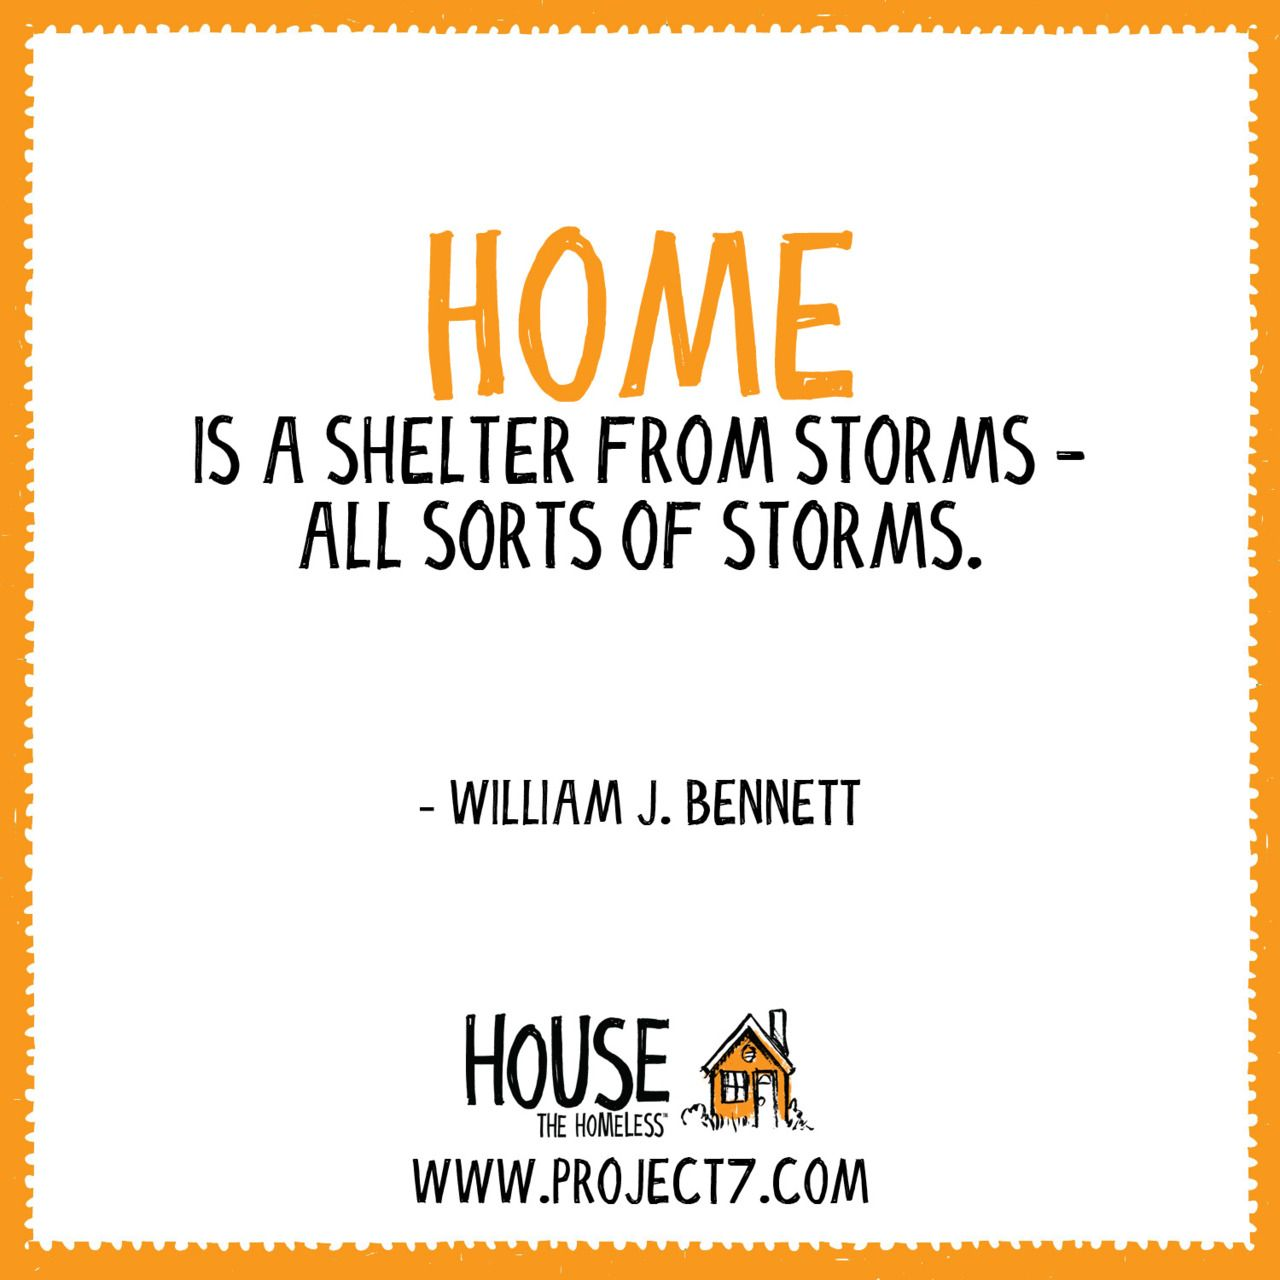 We All Need A Shelter From The Storms Housethehomeless Solutions To Homelessness Emergency Shelter Homeless